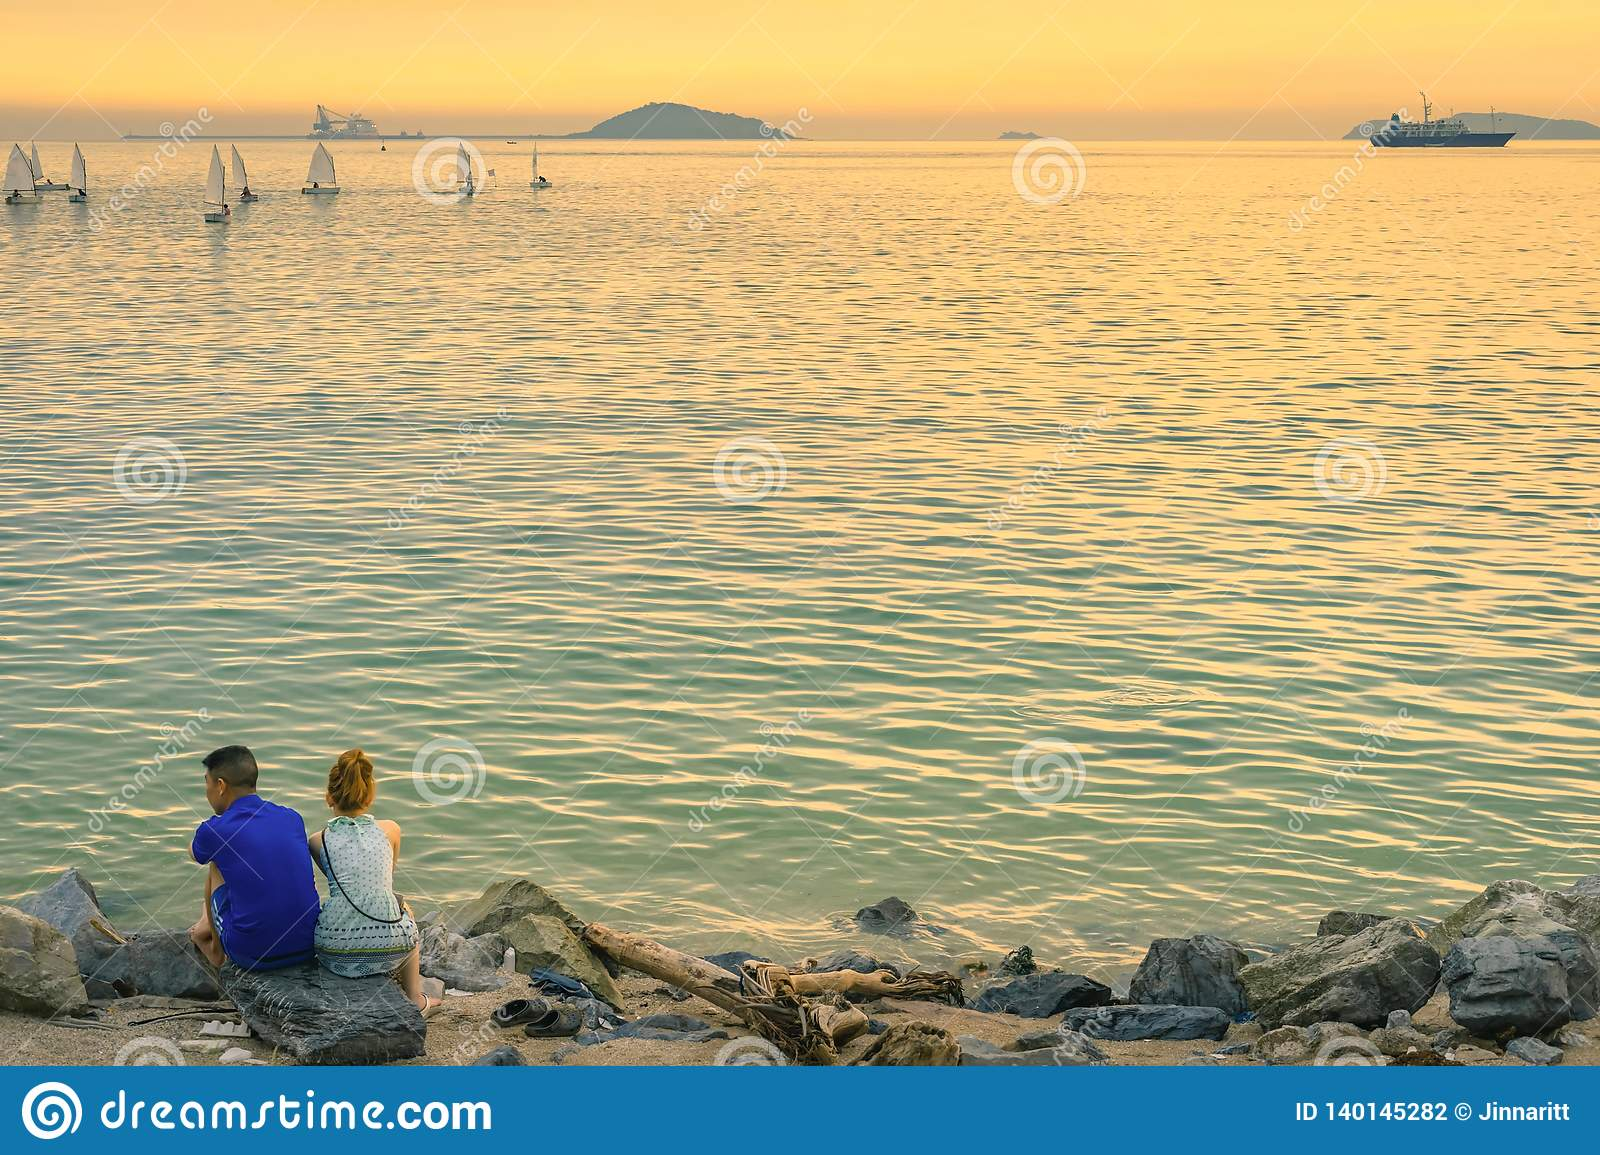 Back view of young couple sitting together on stone in front of ocean enjoying sunset